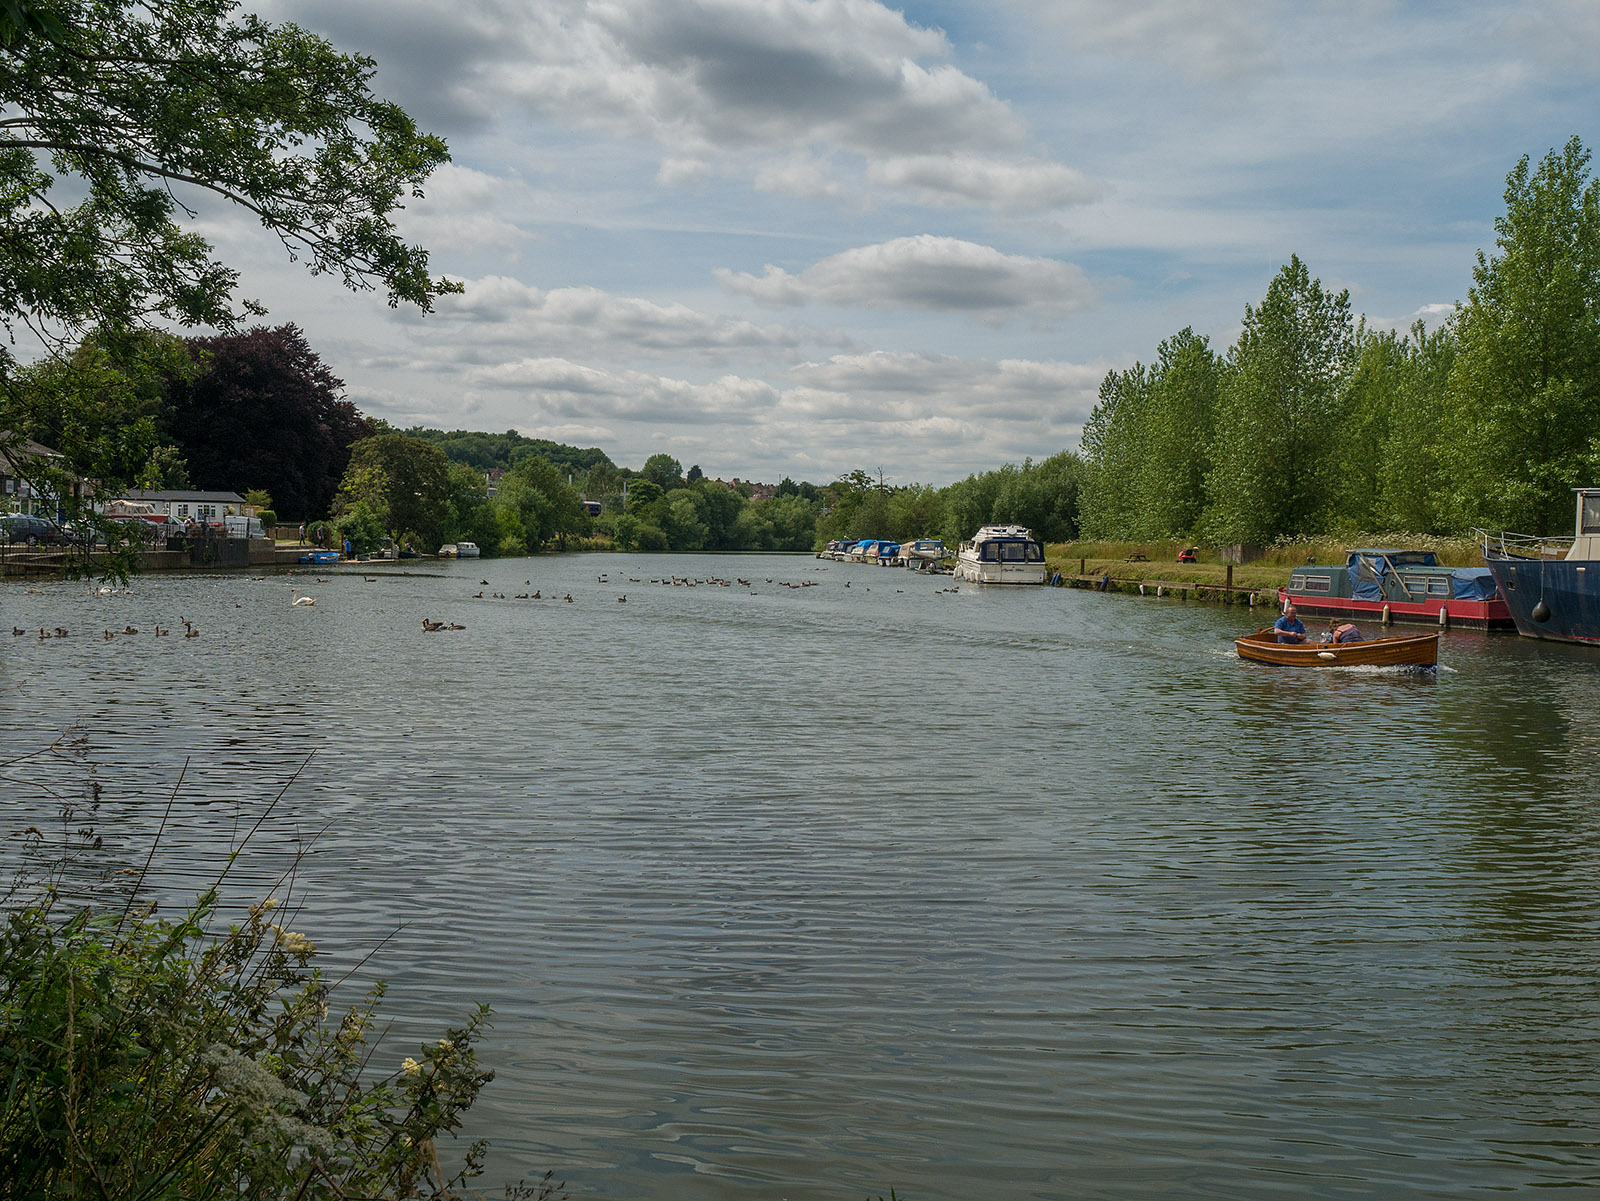 Approaching Thames canoe hire